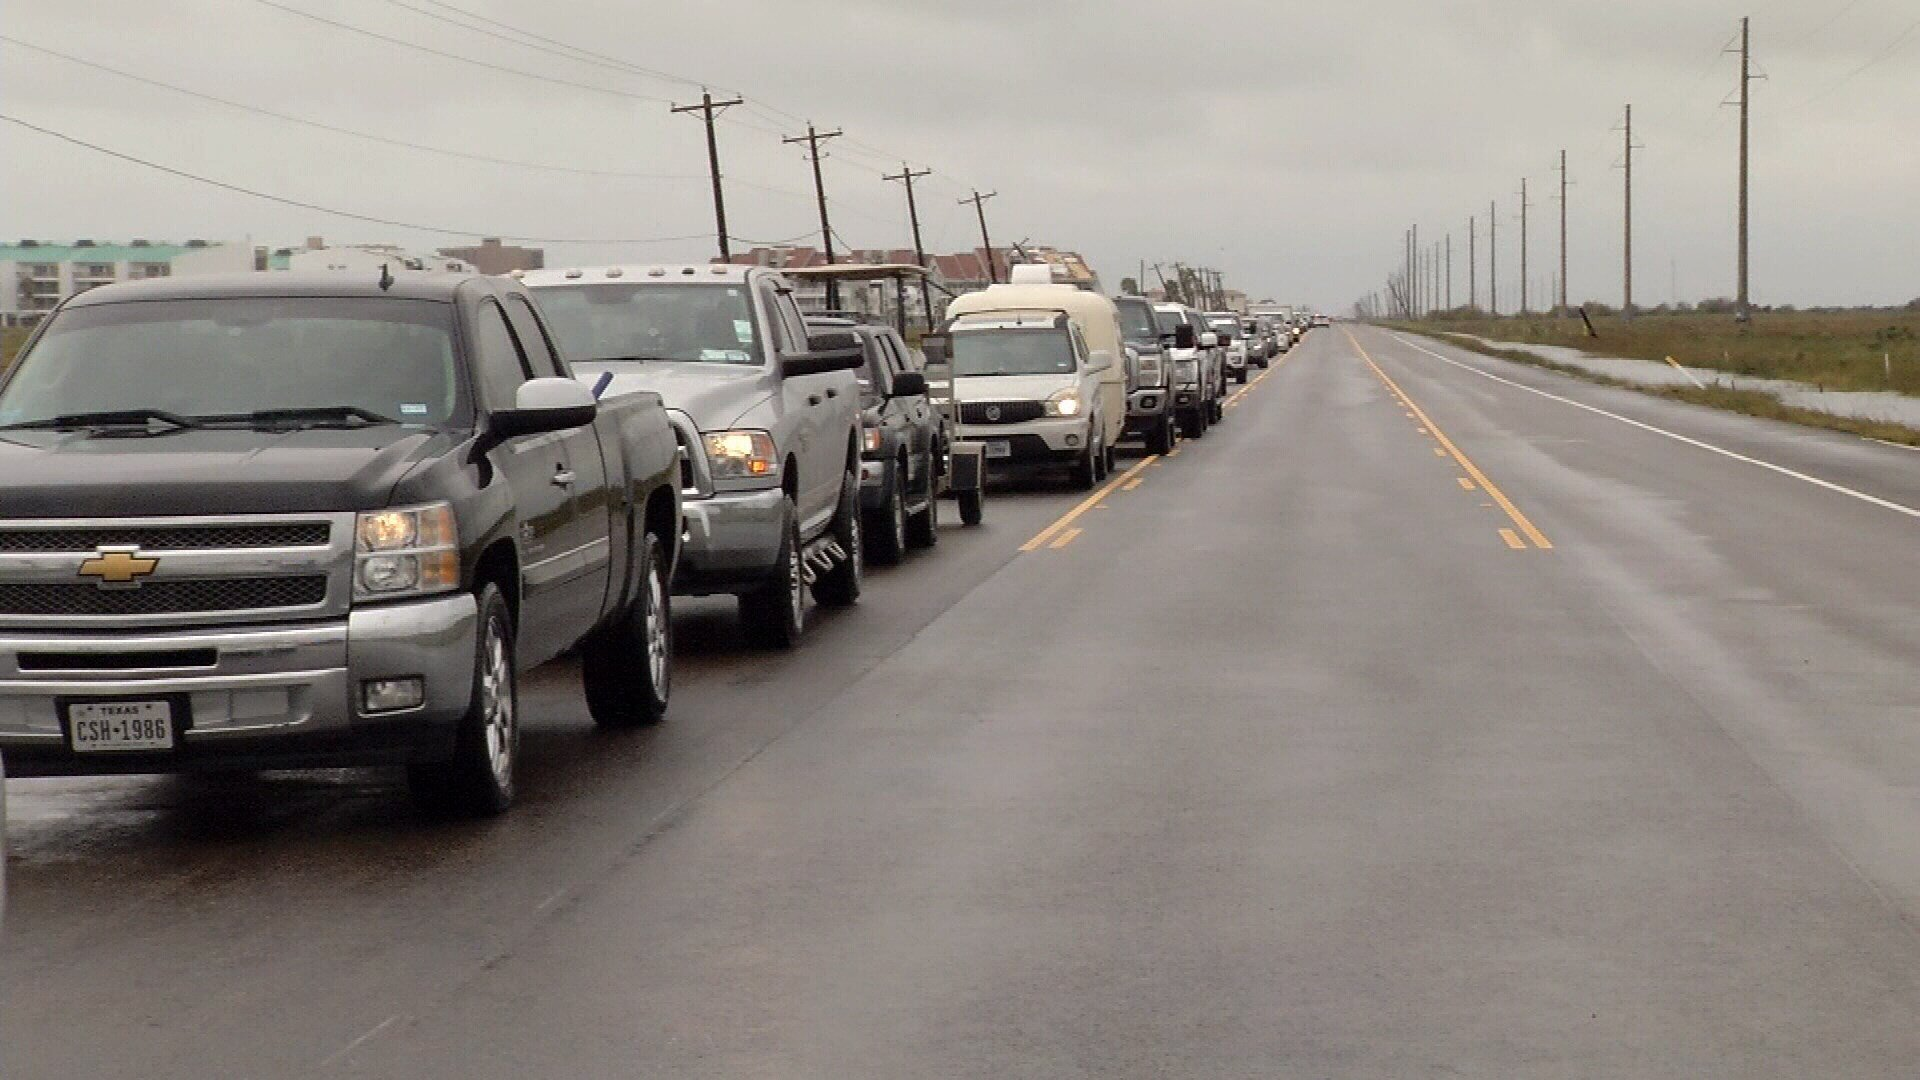 A line of Port Aransas residents waiting in vehicles to cross a checkpoint stretched more than 10 miles down Highway 361.